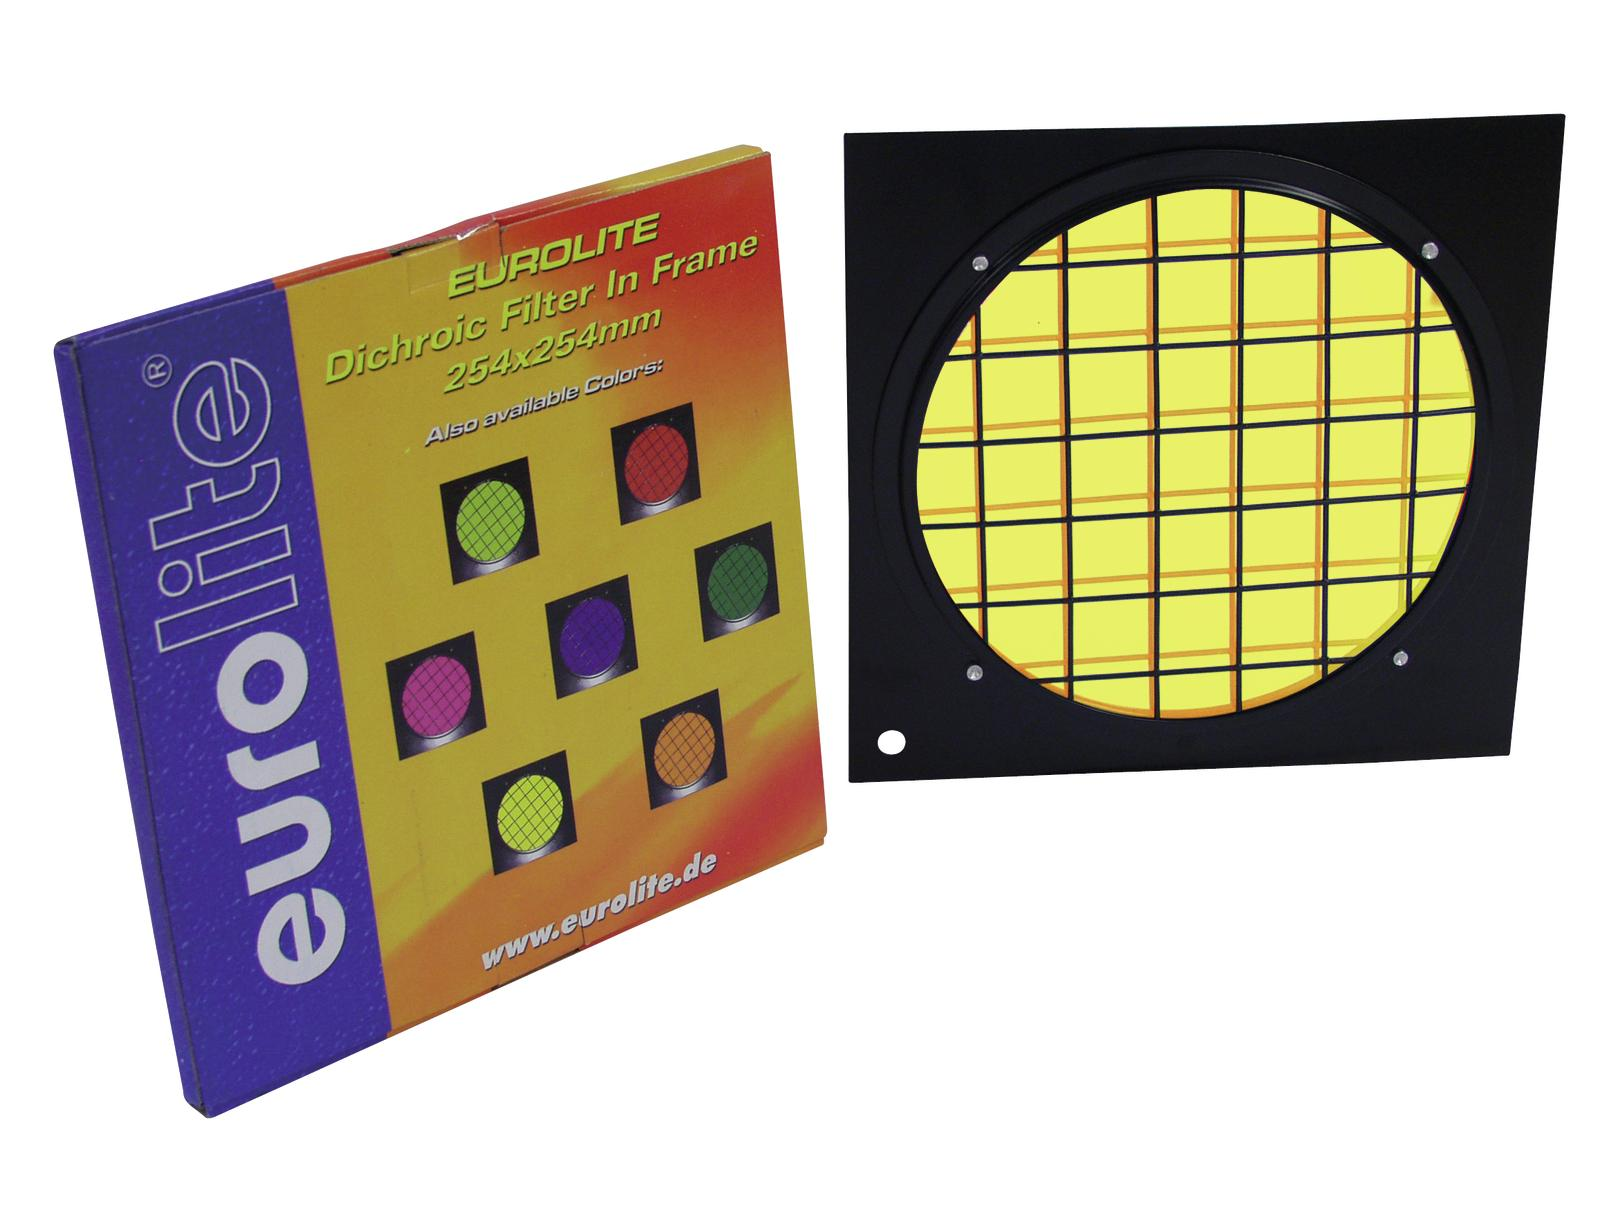 Filter, Dichroic, For PAR 64 profi-spot 254 x 254 mm EUROLITE Yellow